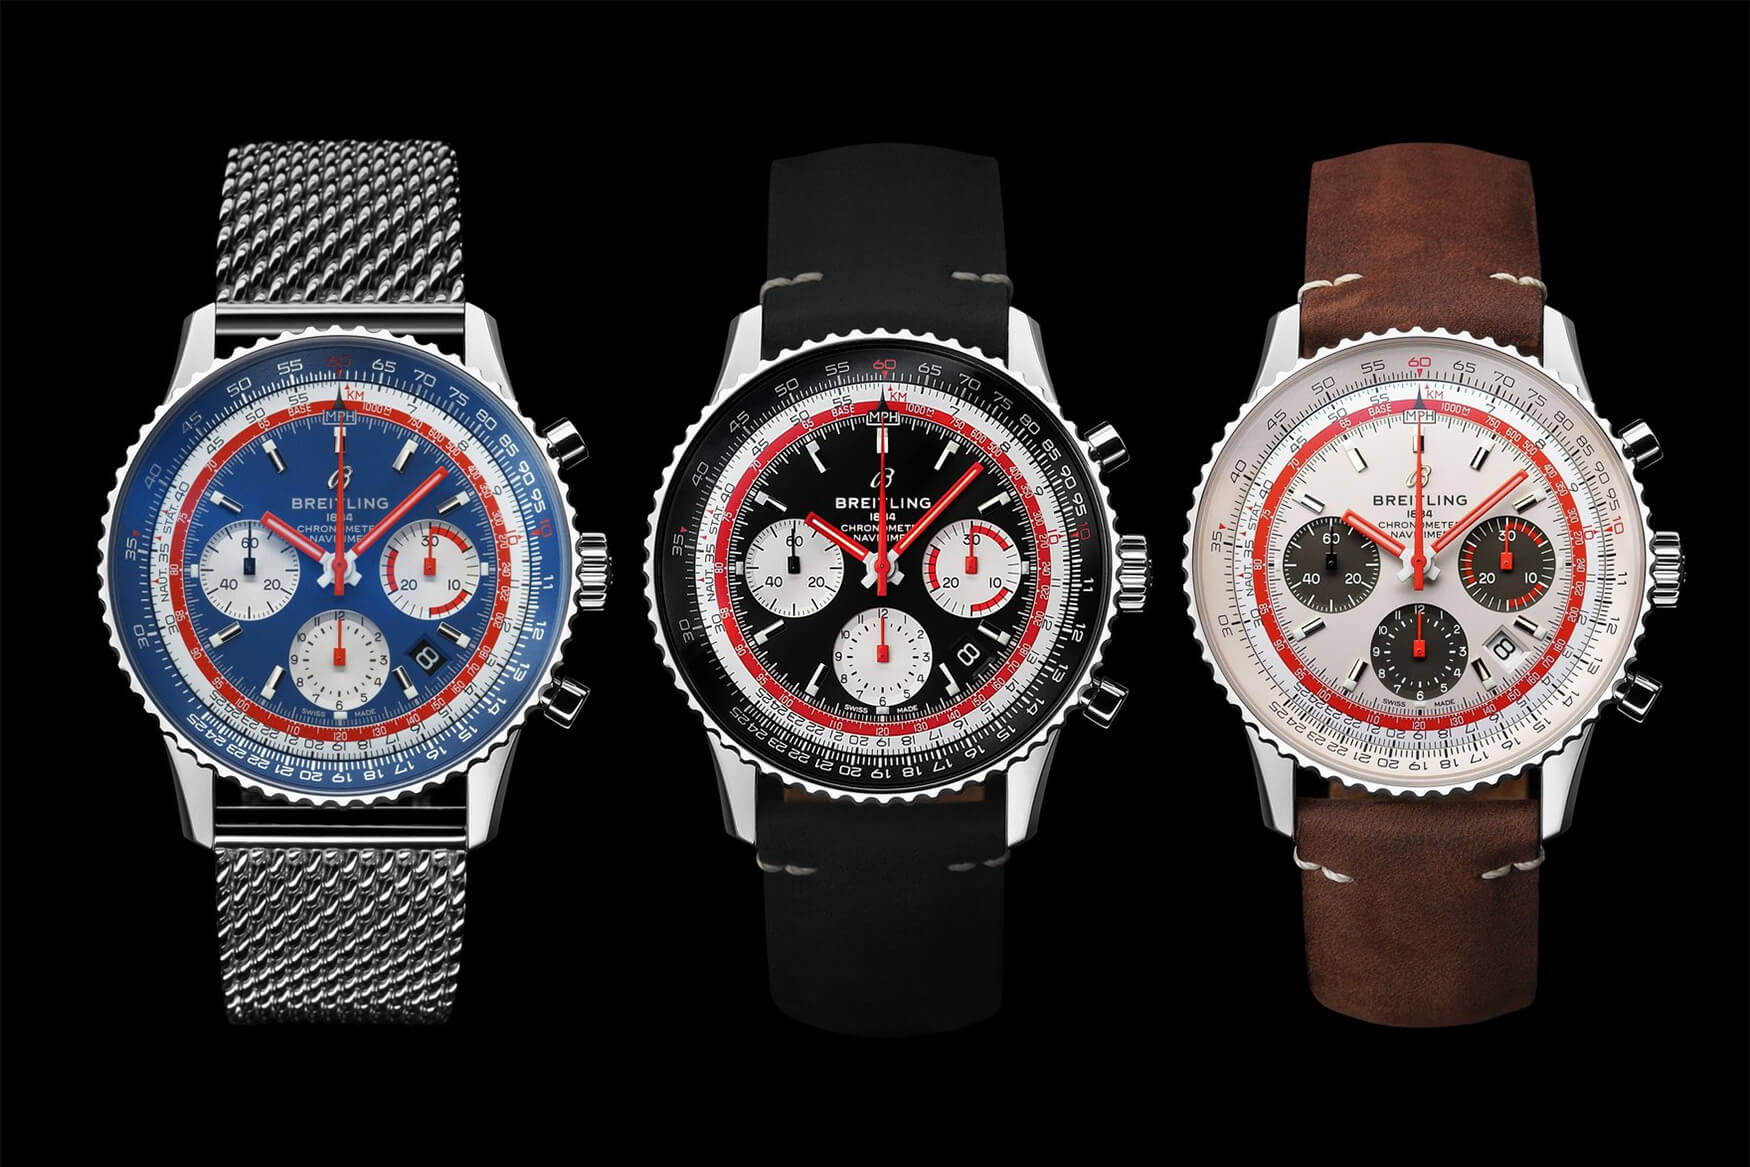 2ca6a9d601a Breitling s Airline-Inspired Navitimer 1 Watches - Oracle Time